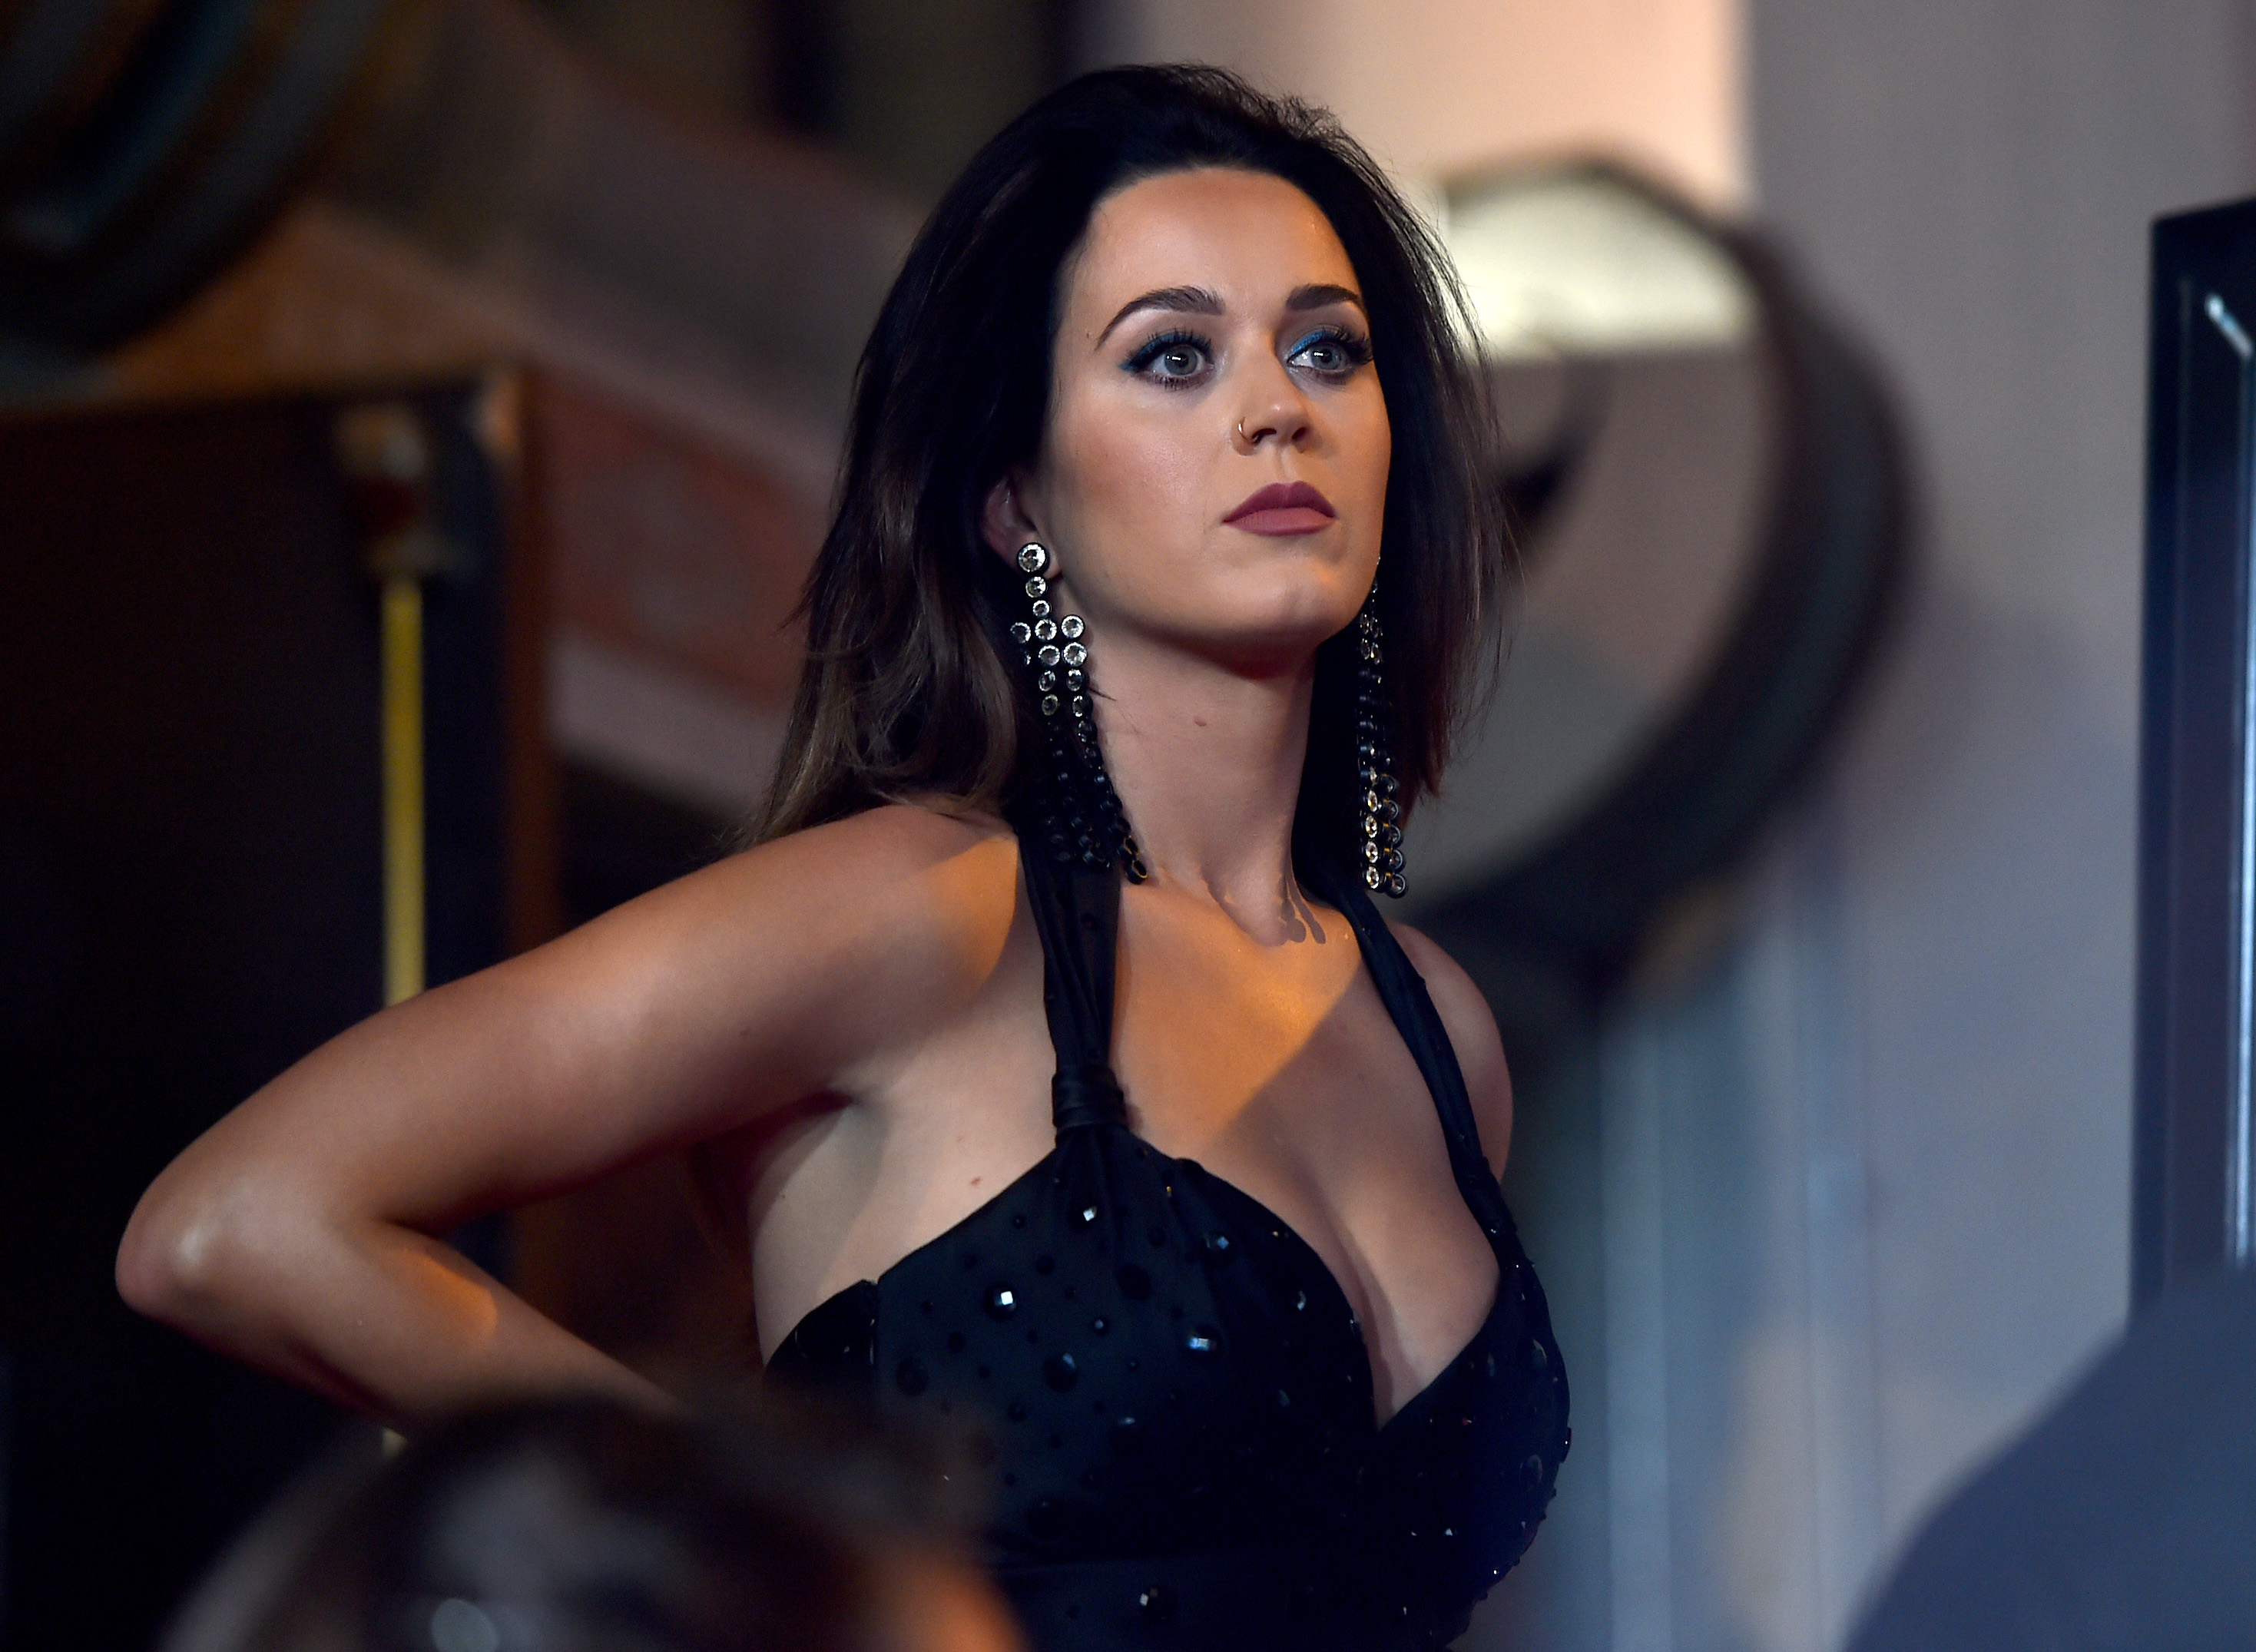 Katy Perry Just Shared An Upskirt Picture Because Why Not GettyImages 487347040